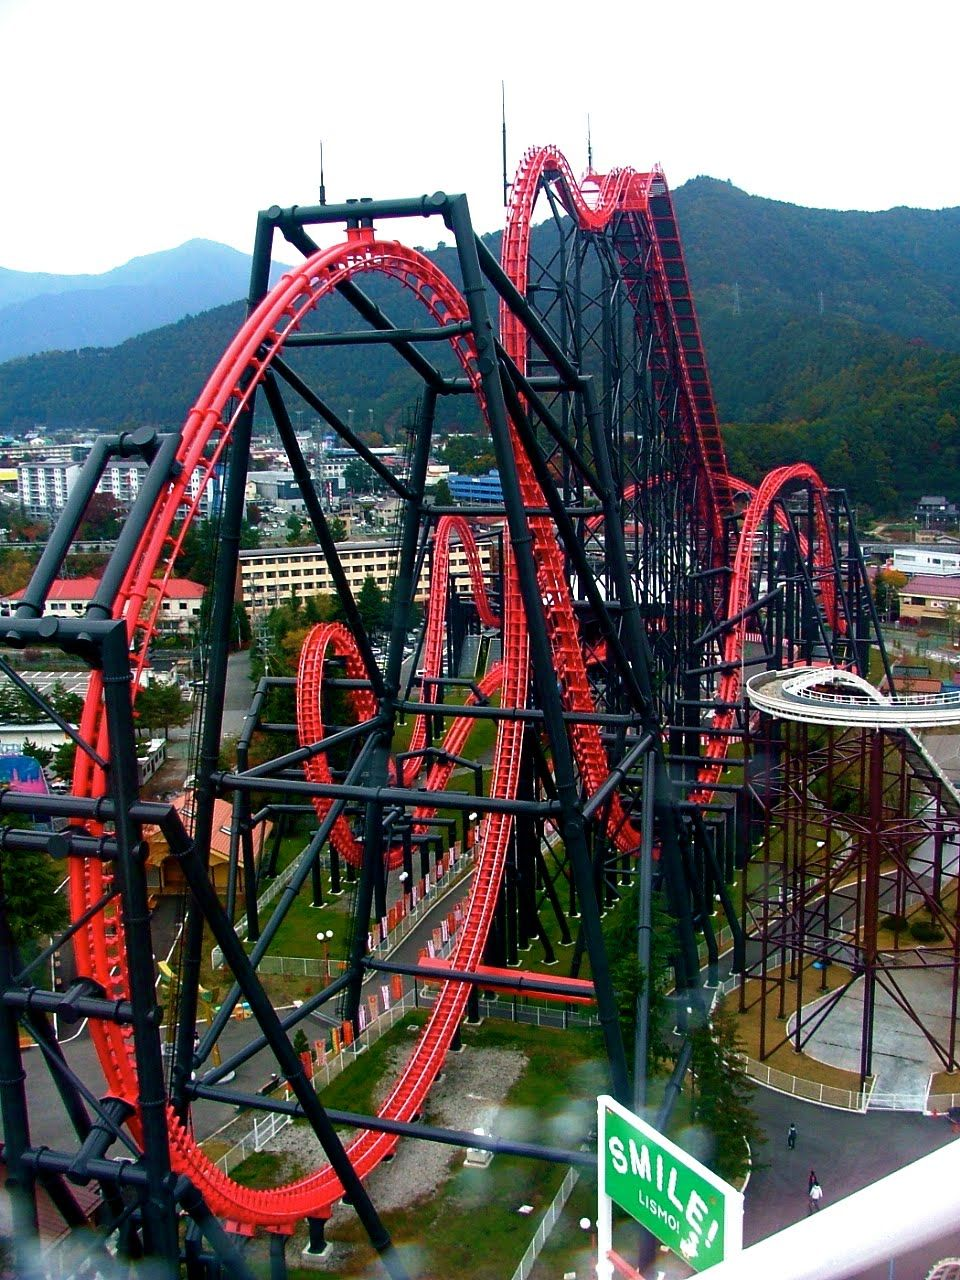 riding a roller coaster essay Energy in a roller coaster ride background essay print although roller coasters have changed quite a bit since the ride first became popular, the basic design principles remain the same whether the ride consists of an old.